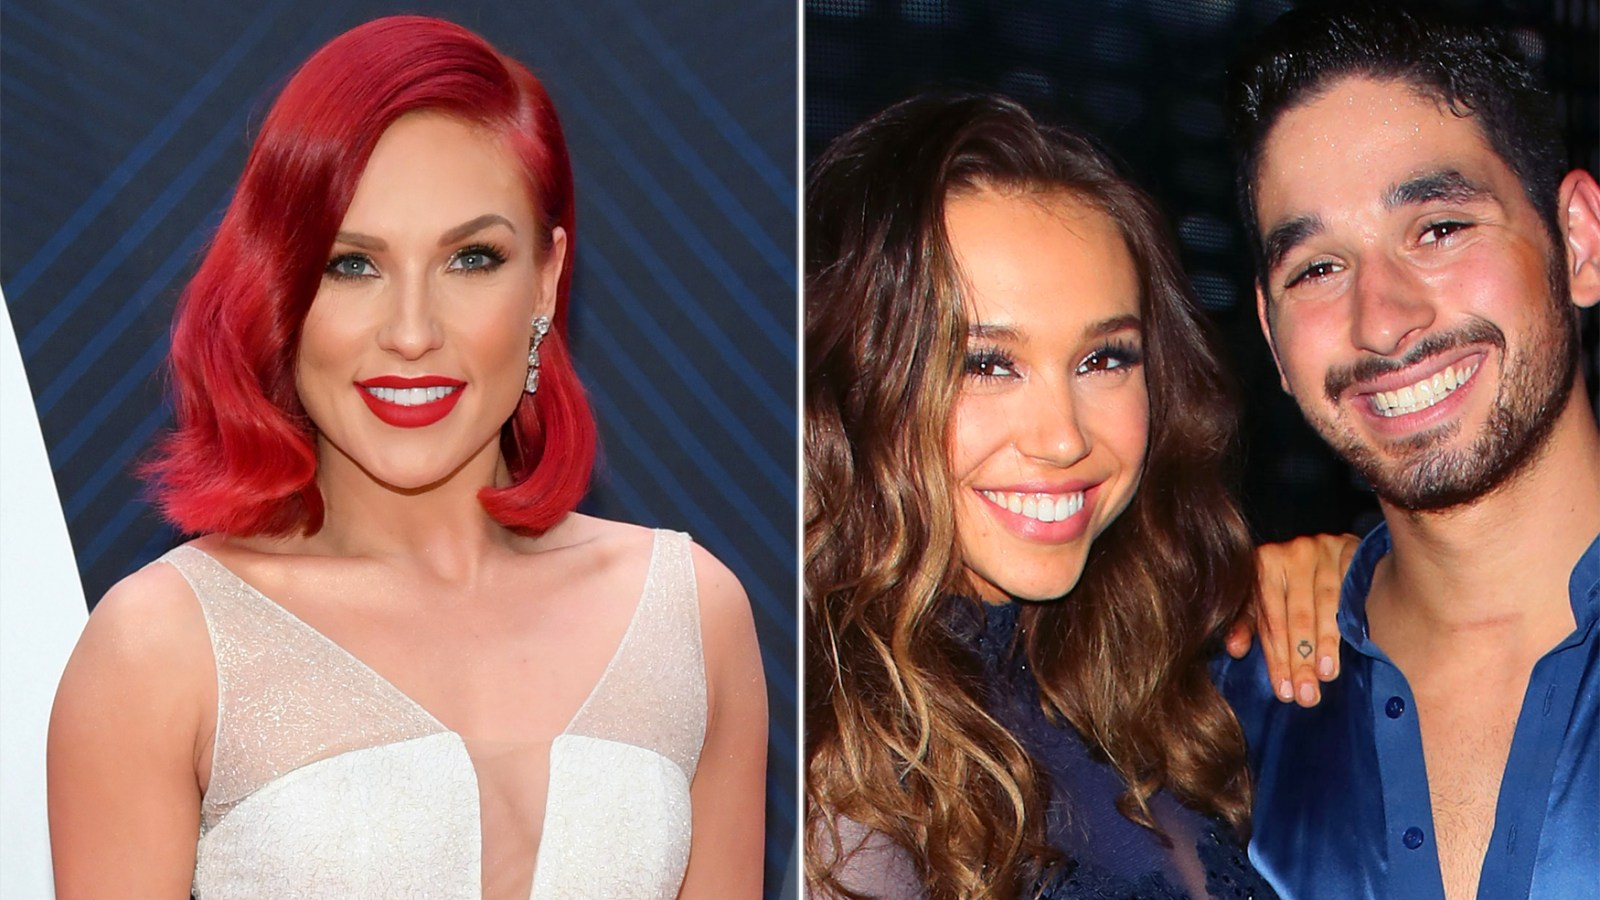 b626e9f928b8c Sharna Burgess on Alexis Ren and Alan Bersten s Onscreen Relationship  It  Put  a Little Bit Too Much Pressure on Them